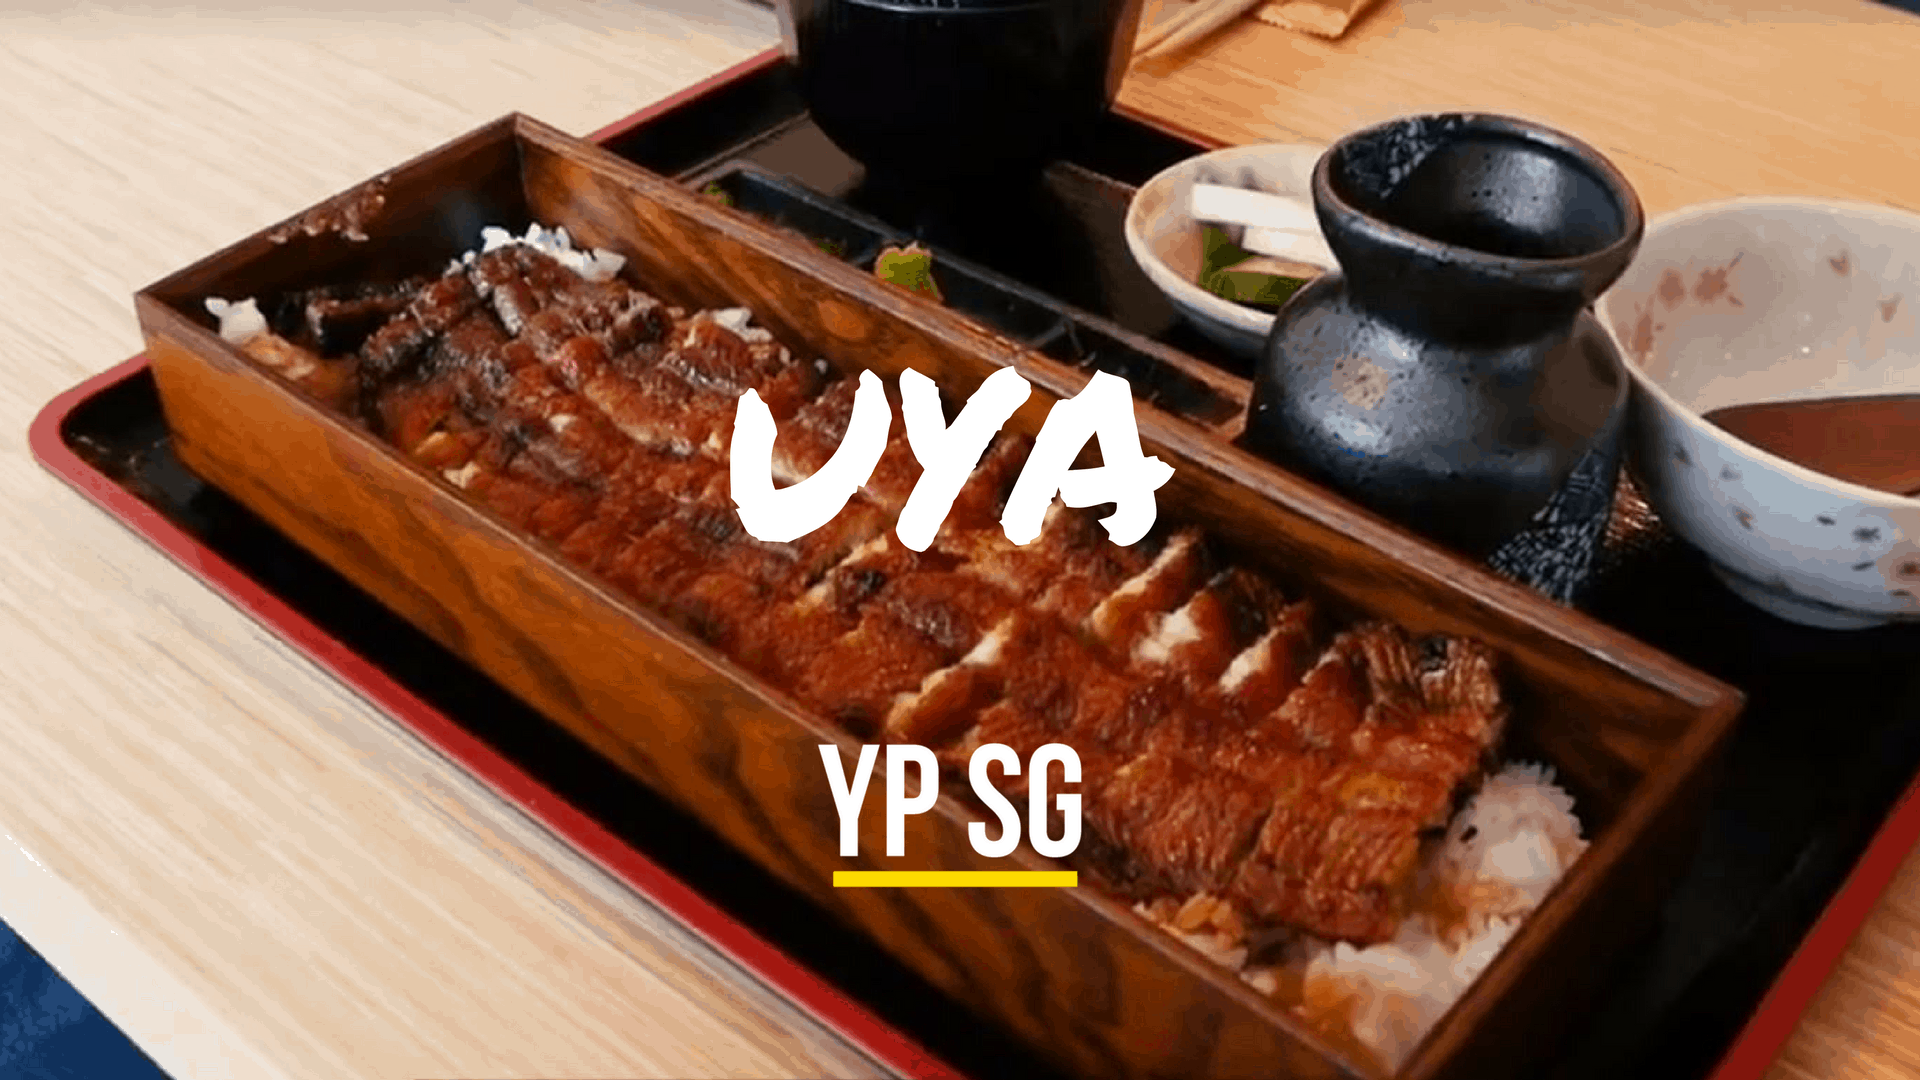 The New Unagi Place That's Set To Rival Man Man Japanese Unagi Restaurant